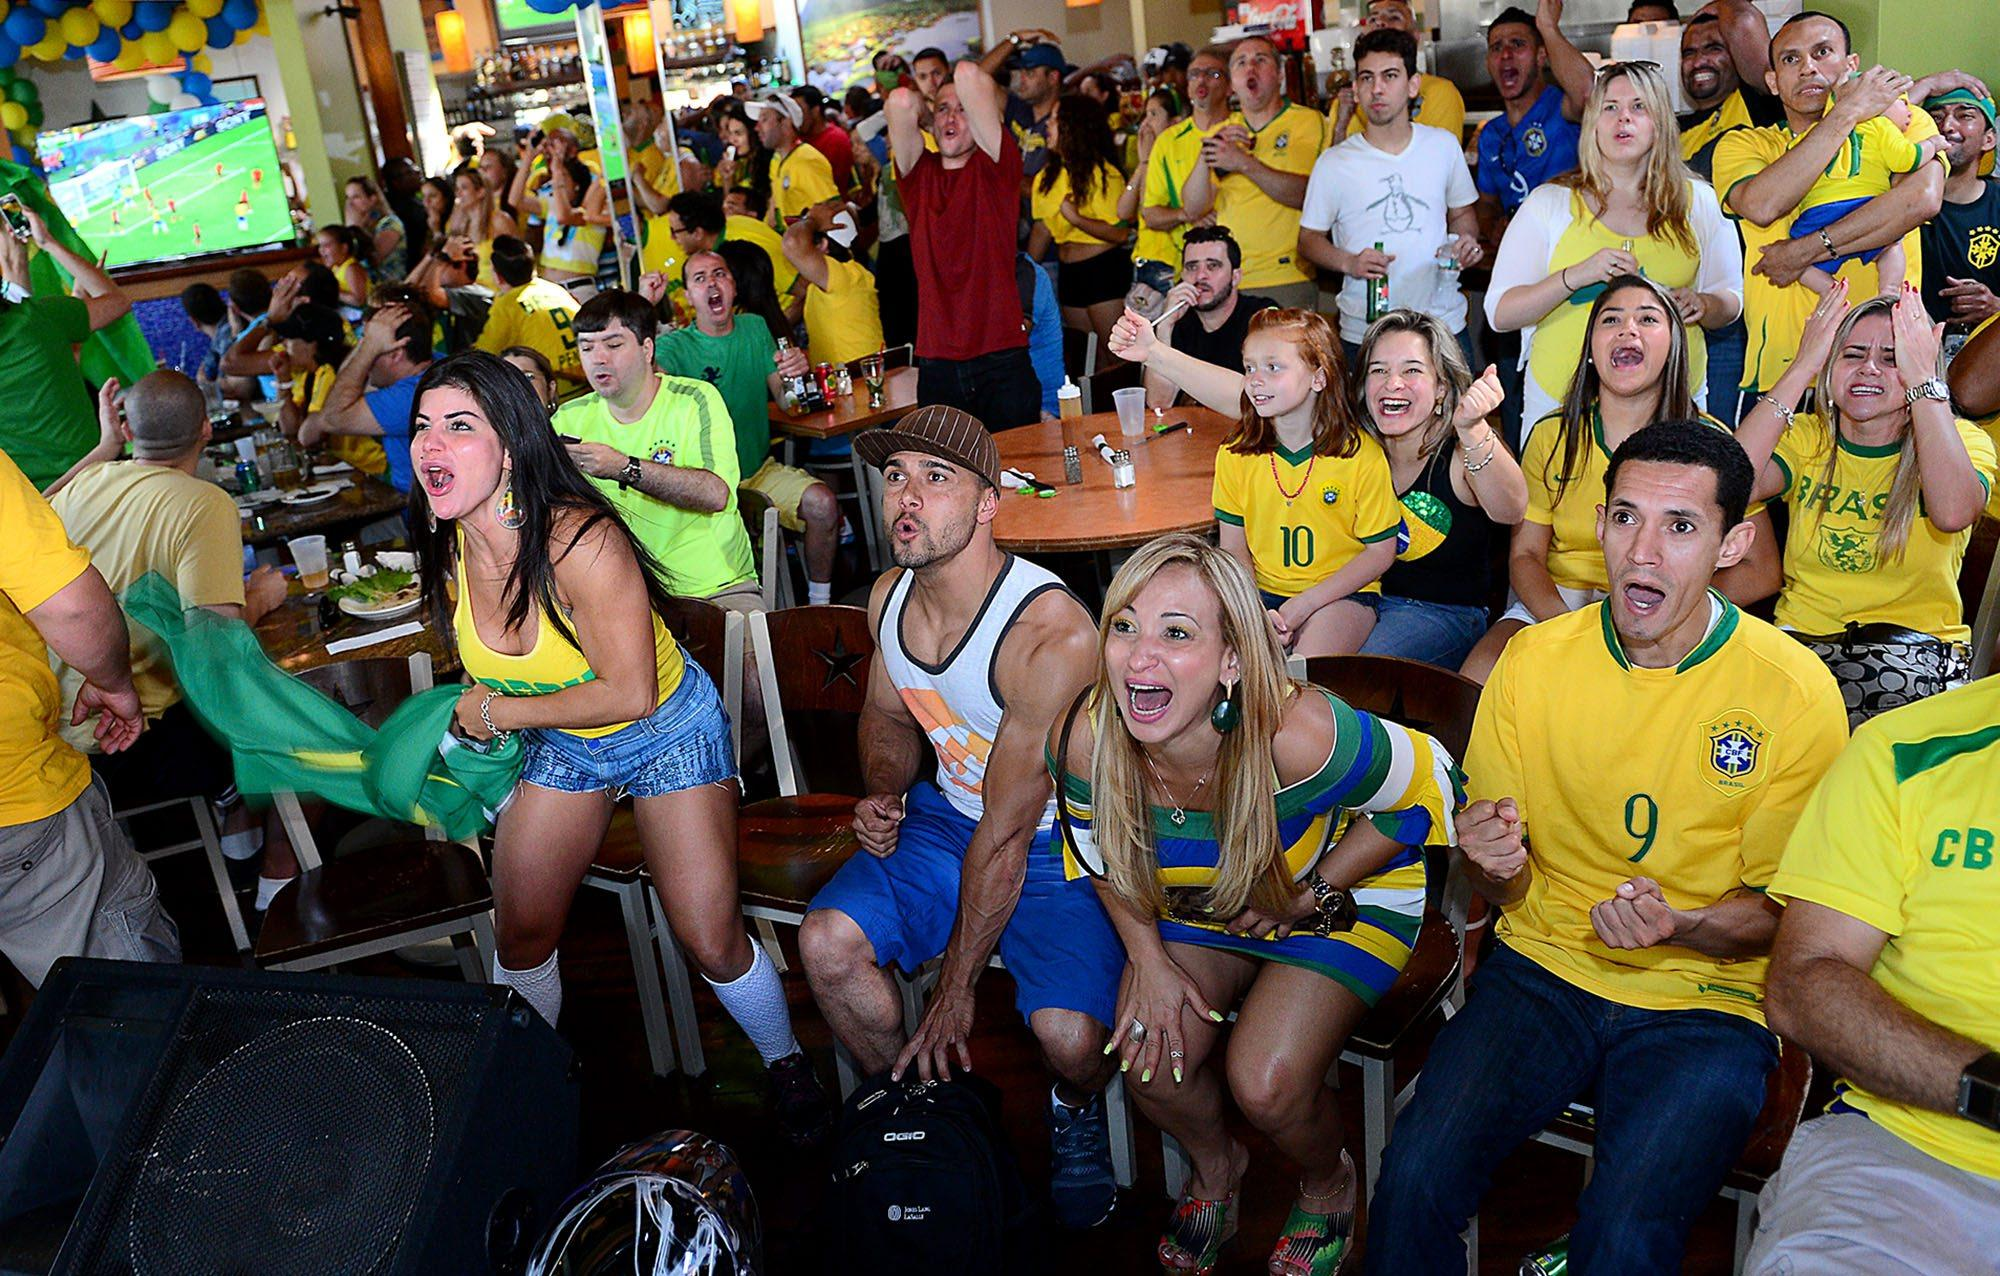 Brazilian Fans Watching The World Cup Playoffs In The Tropical Cafe In Framingham, 2014. Courtesy Of The Milford Daily News.